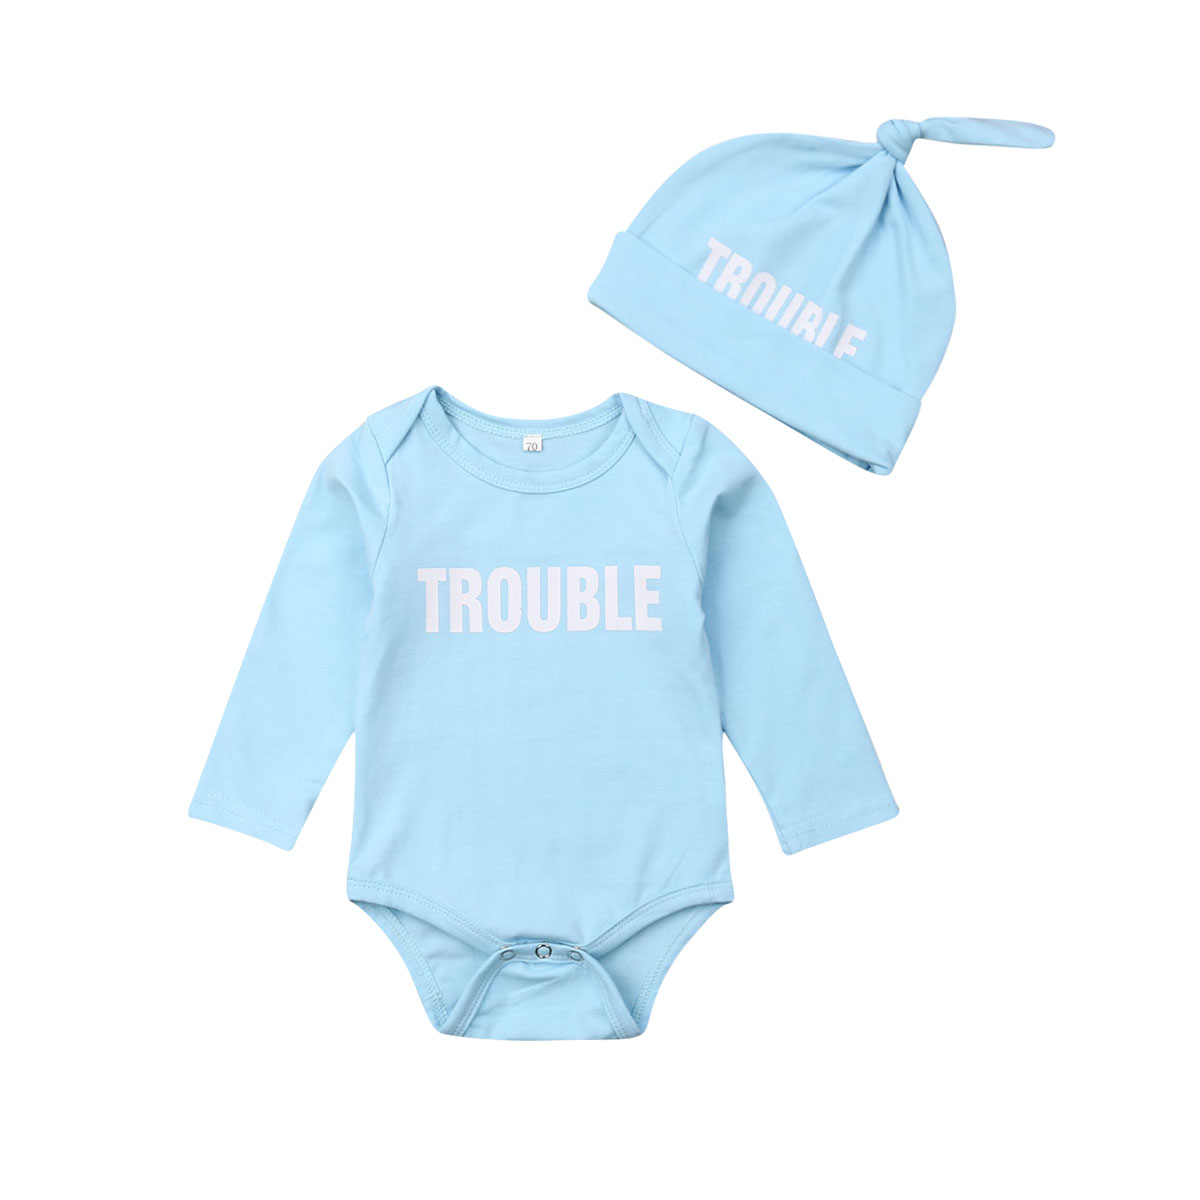 Newborn Baby Girl Boy Short Sleeve Letter Top Romper Jumpsuit Clothes Outfit Set